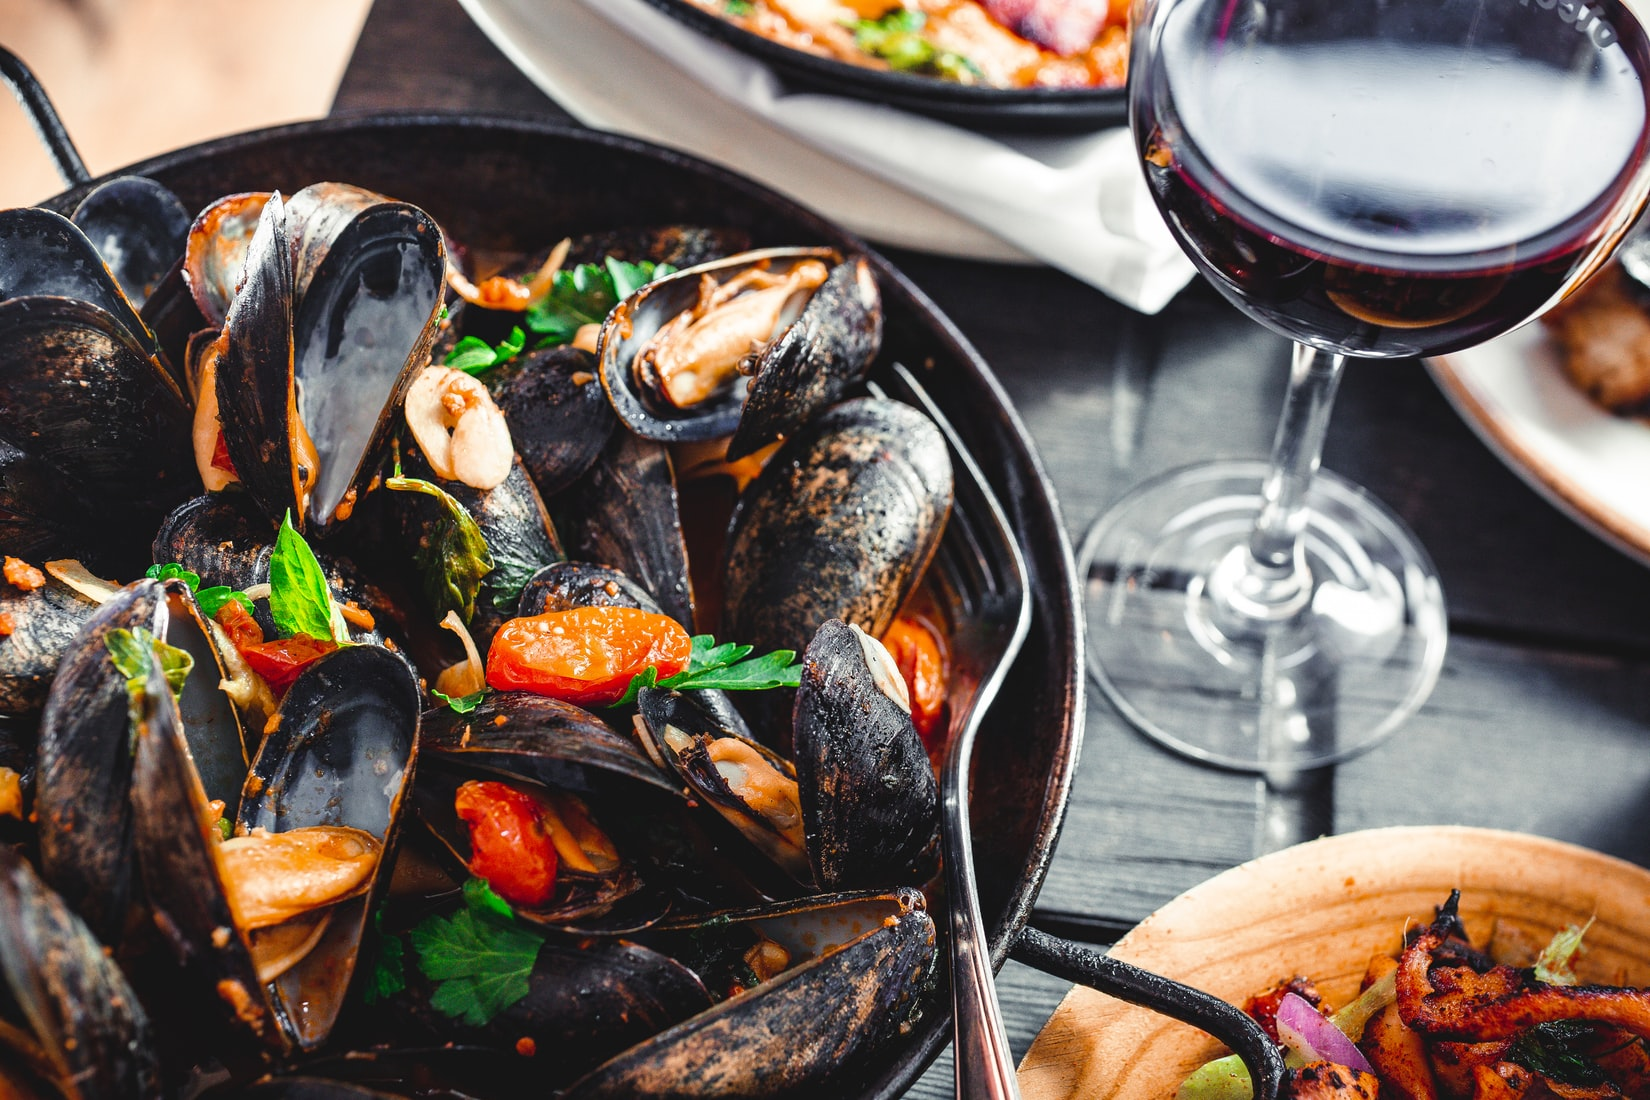 The Best Seafood Spots in Boston